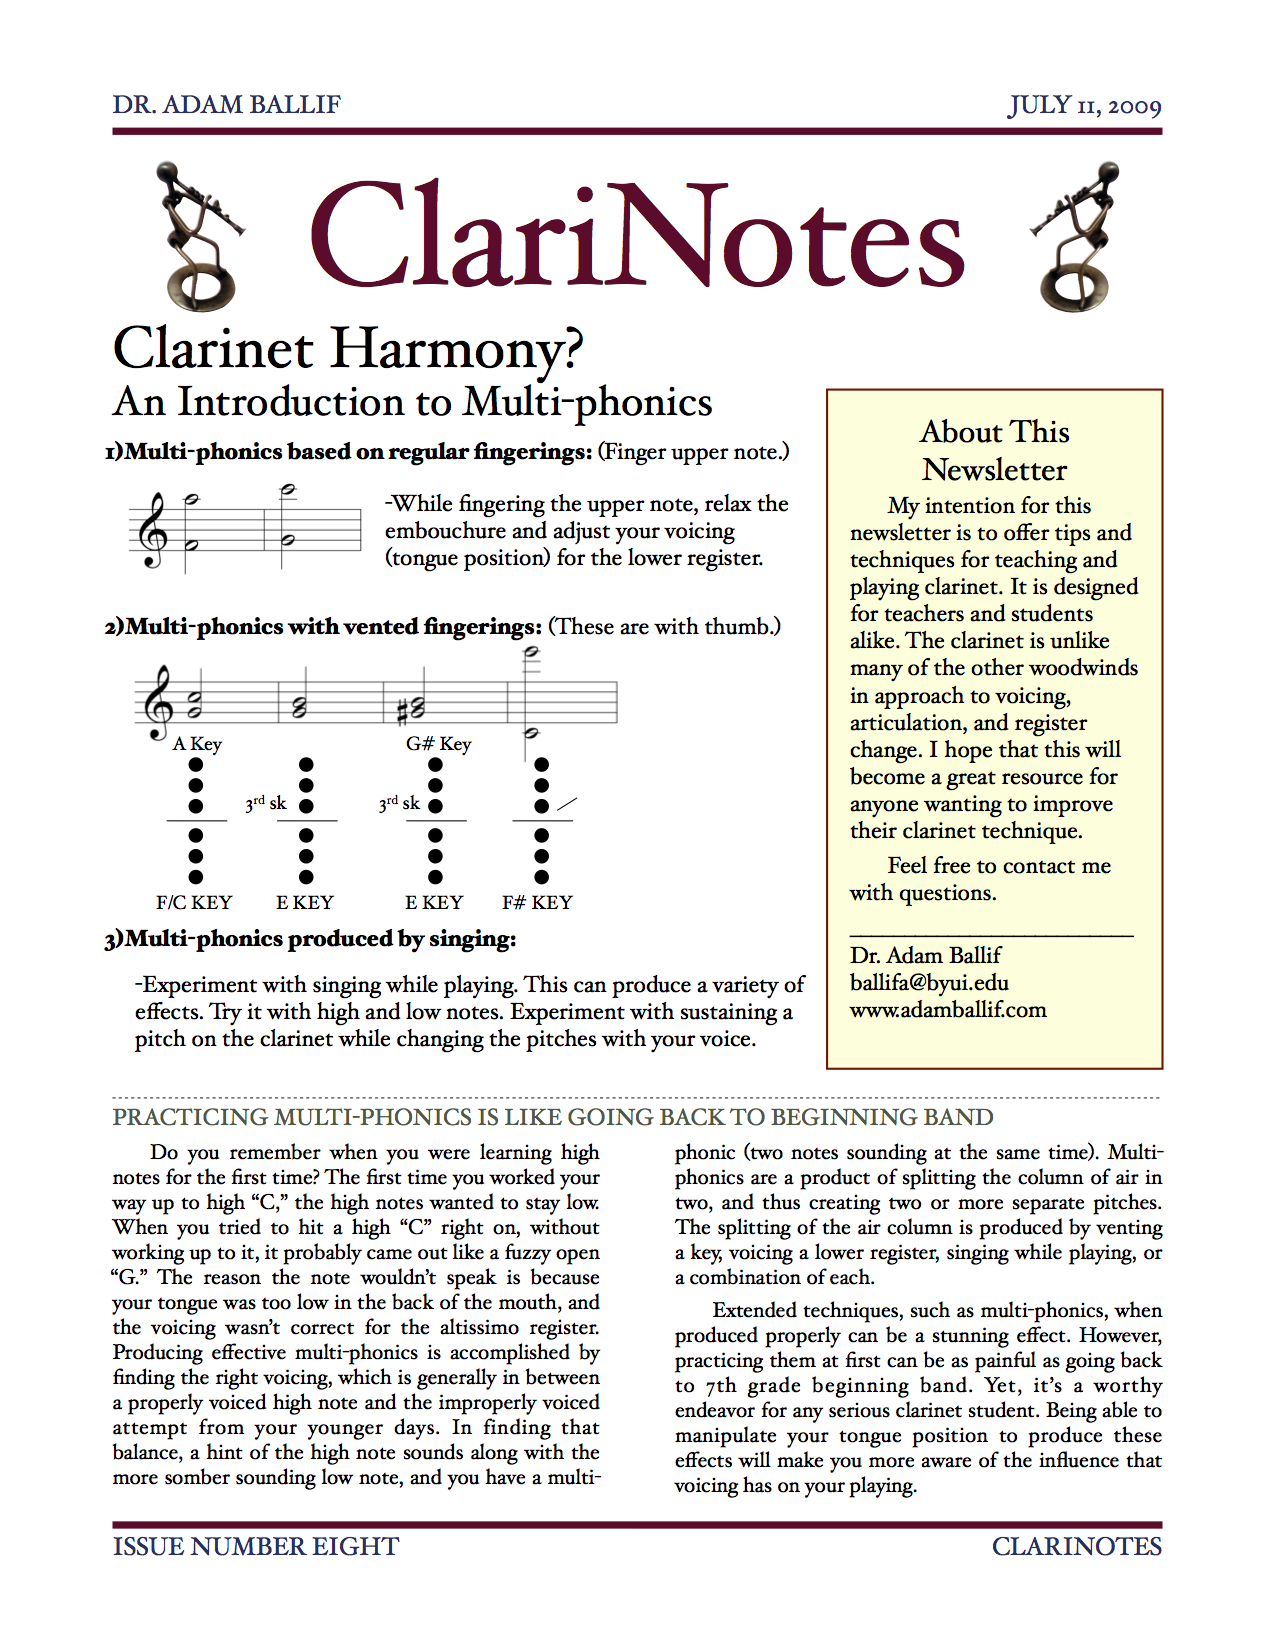 Issue Eight - Multiphonics